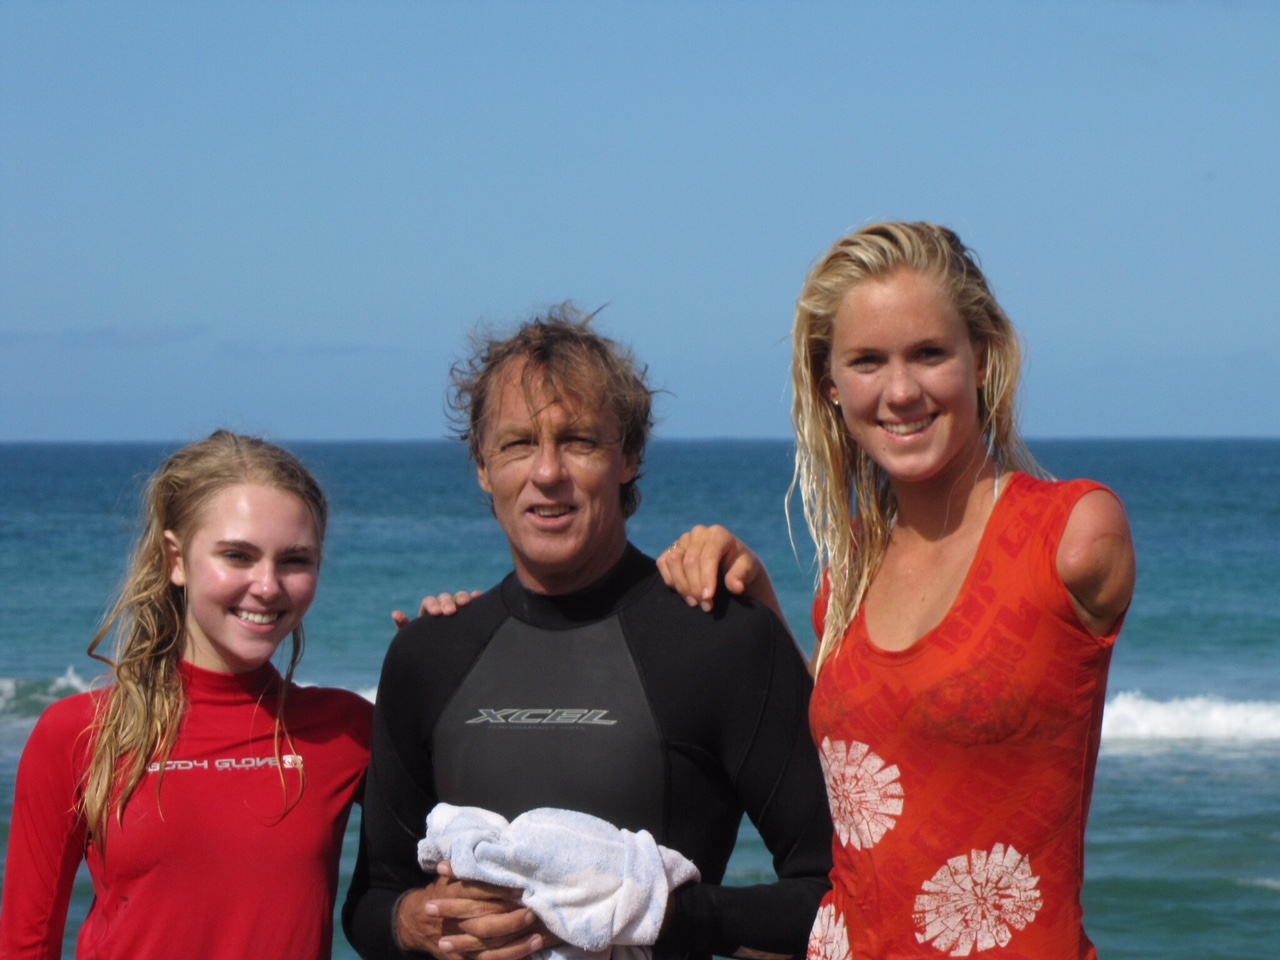 Russell Lewis  - A highly skilled surf coach whose extensive experience at all levels of surf coaching has had a huge impact on the kids of the North Shore of Kauai.Picture shown with Bethany Hamilton http://bethanyhamilton.com one of Russell's successful students.